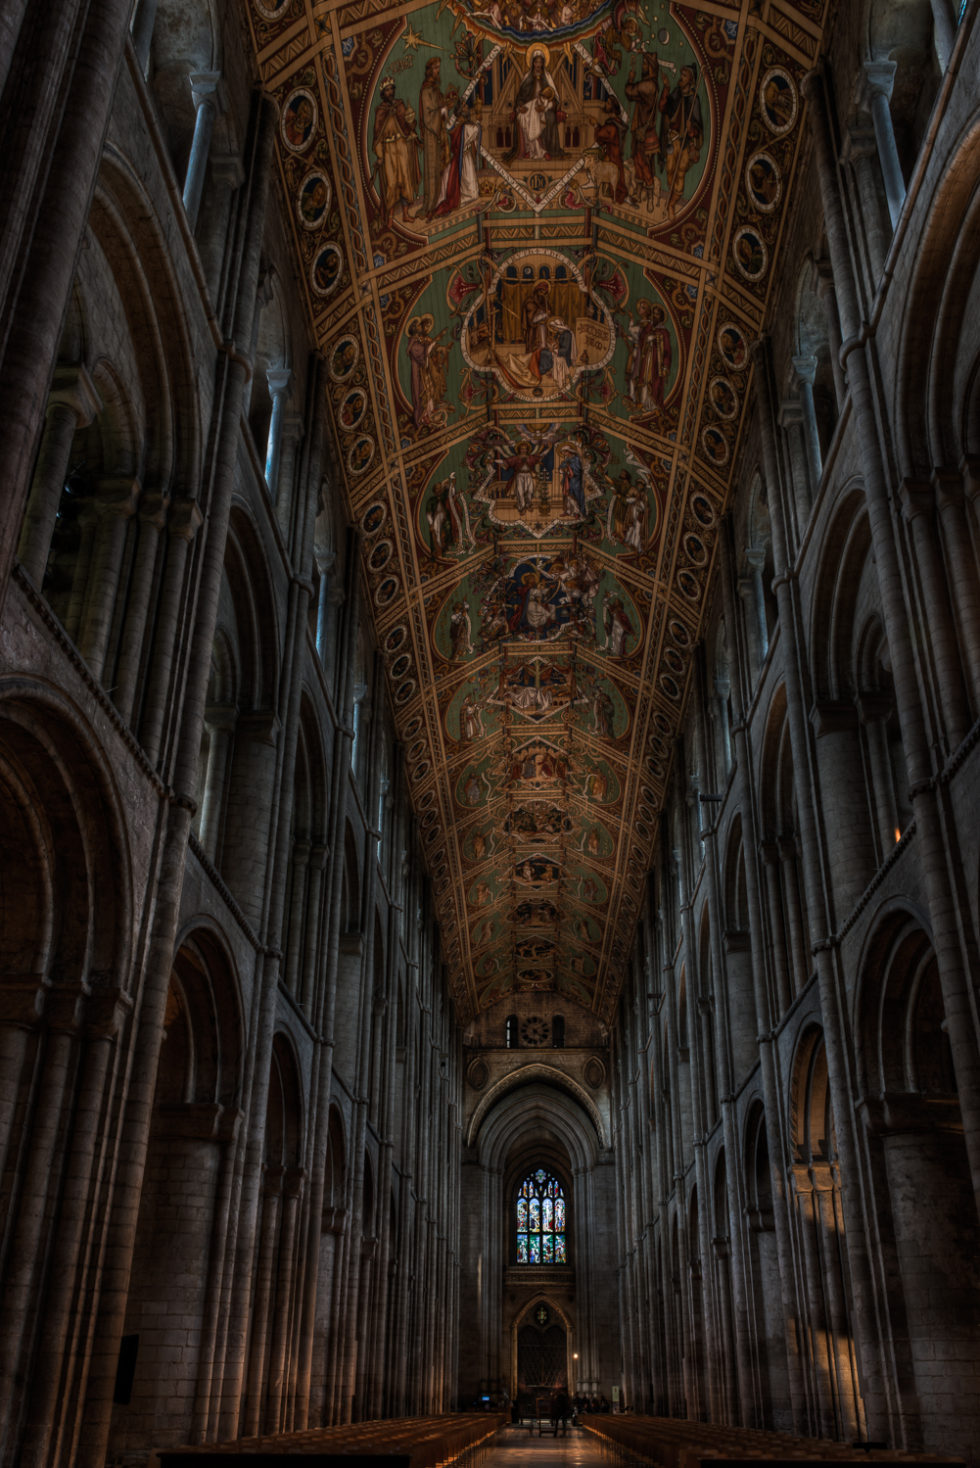 239/365v3 – Ely Cathedral Nave